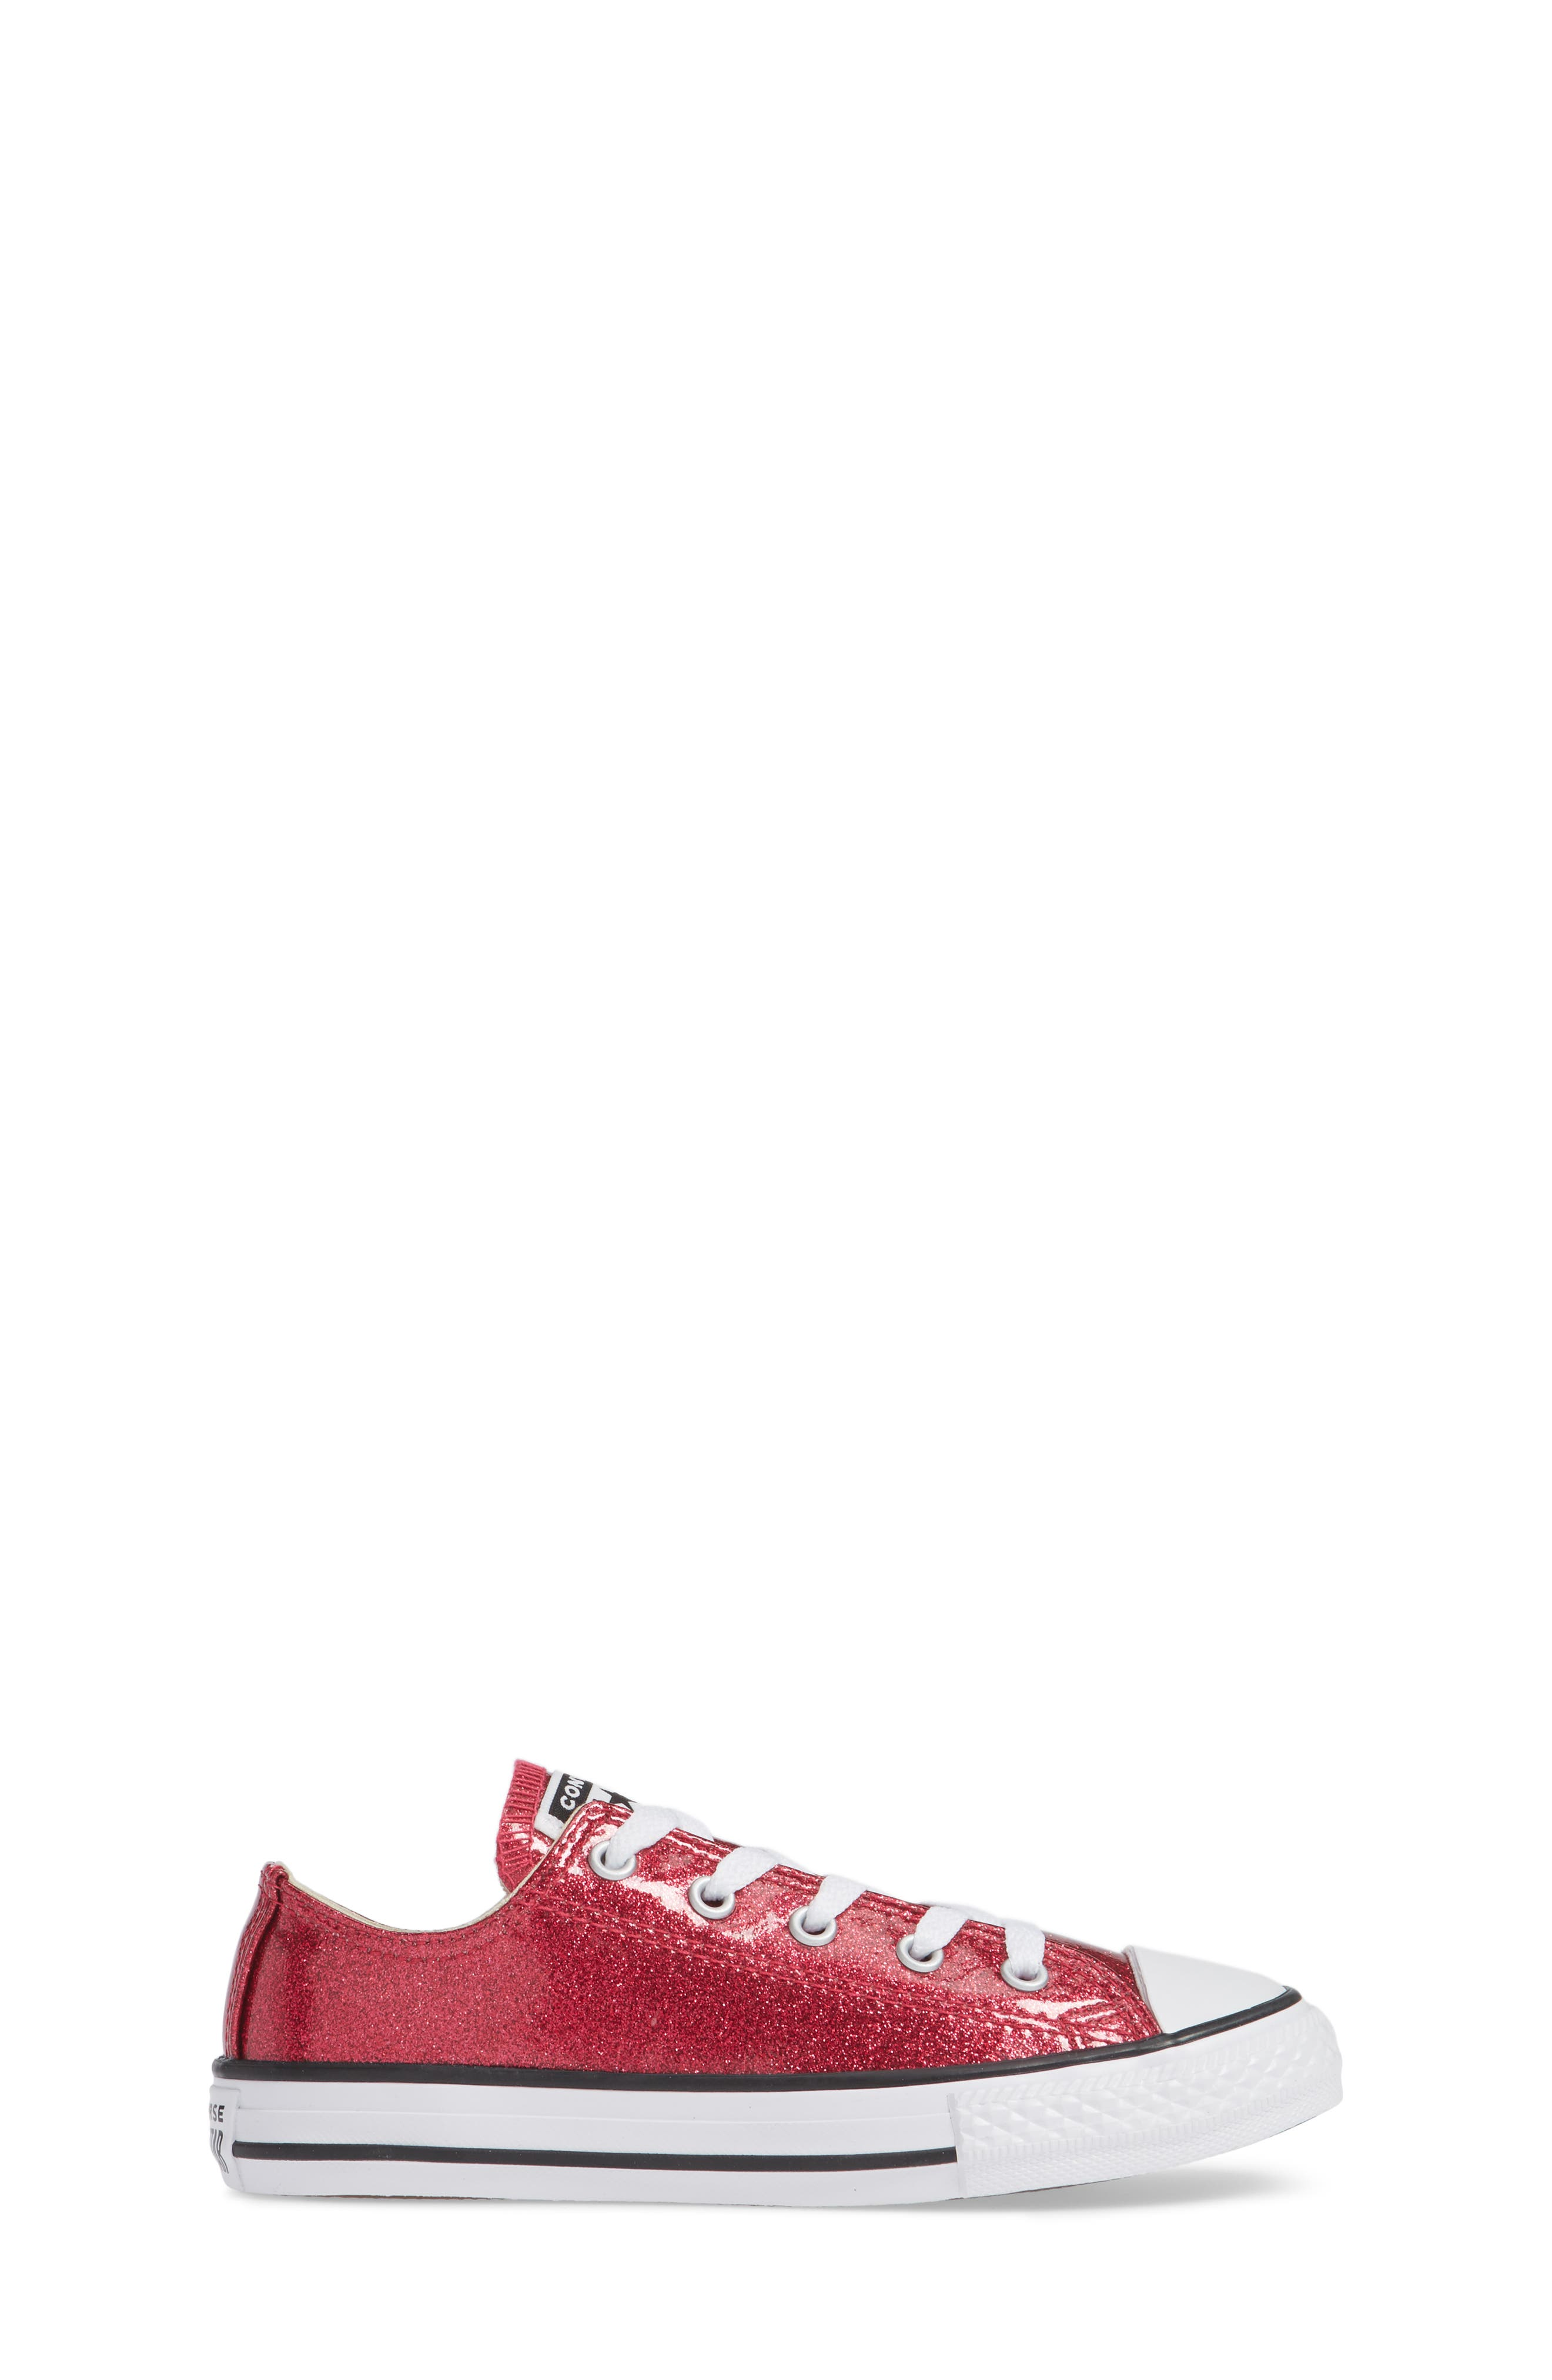 CONVERSE,                             All Star<sup>®</sup> Seasonal Glitter OX Low Top Sneaker,                             Alternate thumbnail 3, color,                             PINK POP